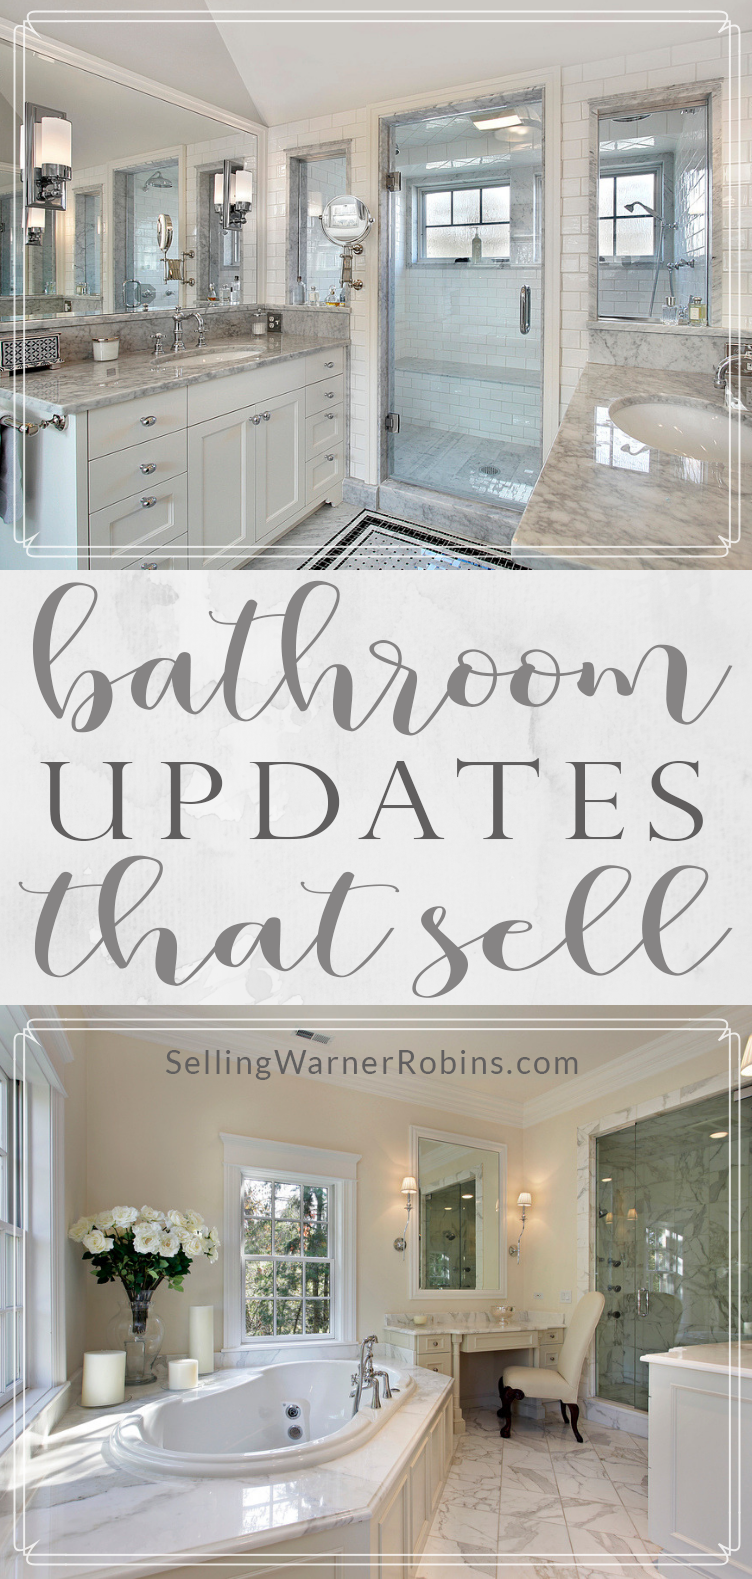 These Key Bathroom Renovation Updates Will Help Sell Your Home And Will Get You In The Right Direction W Bathrooms Remodel Diy Bathroom Remodel Home Renovation